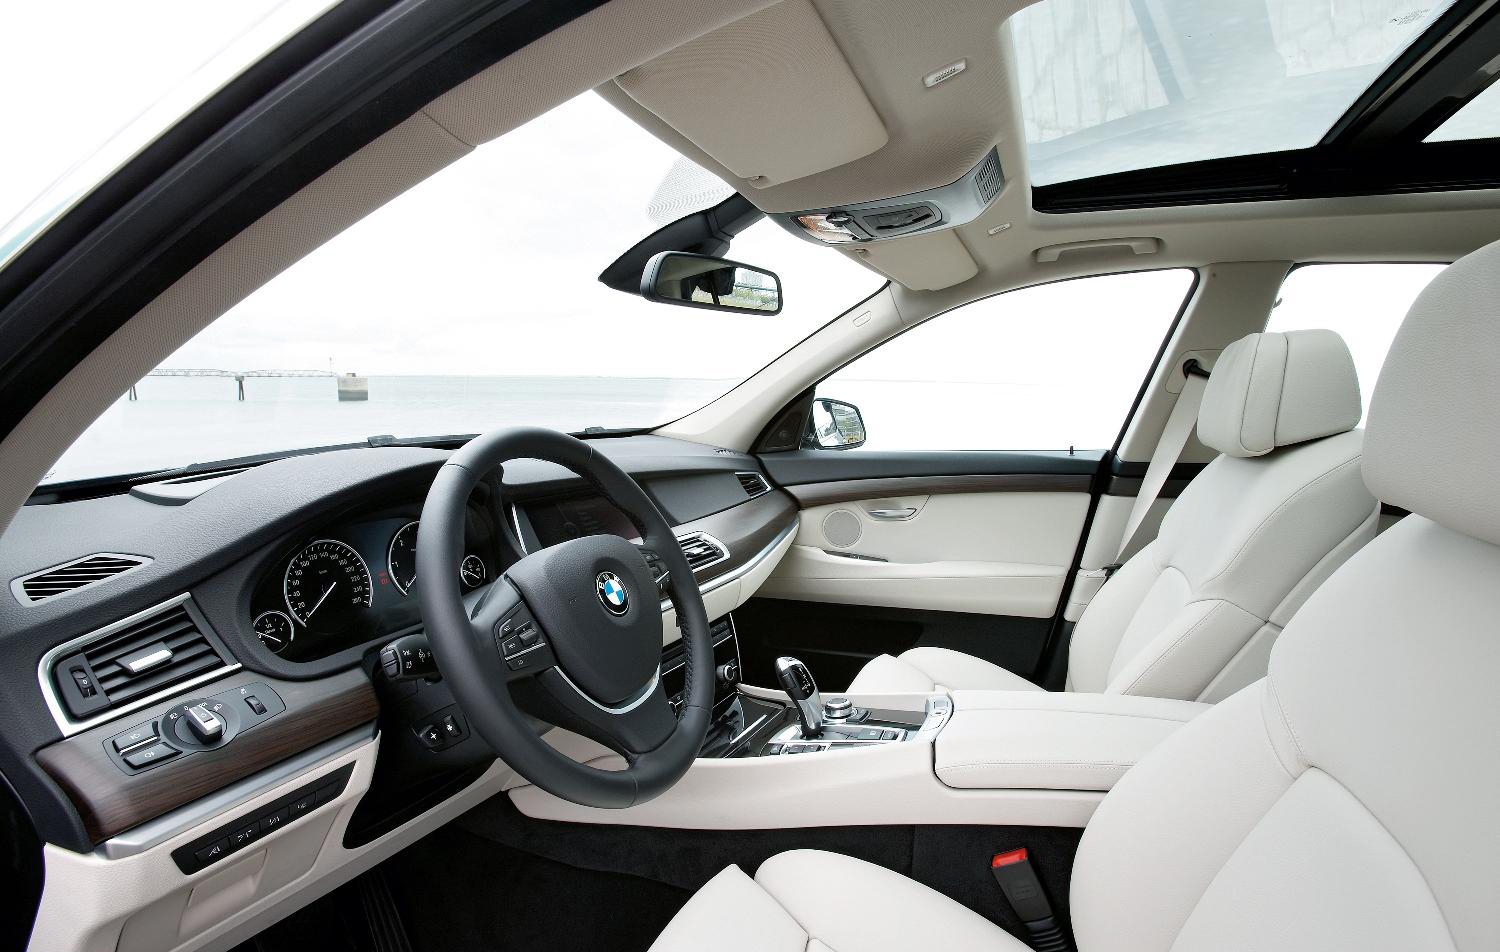 Bmw 3 series gt review 2013 publicscrutiny Gallery